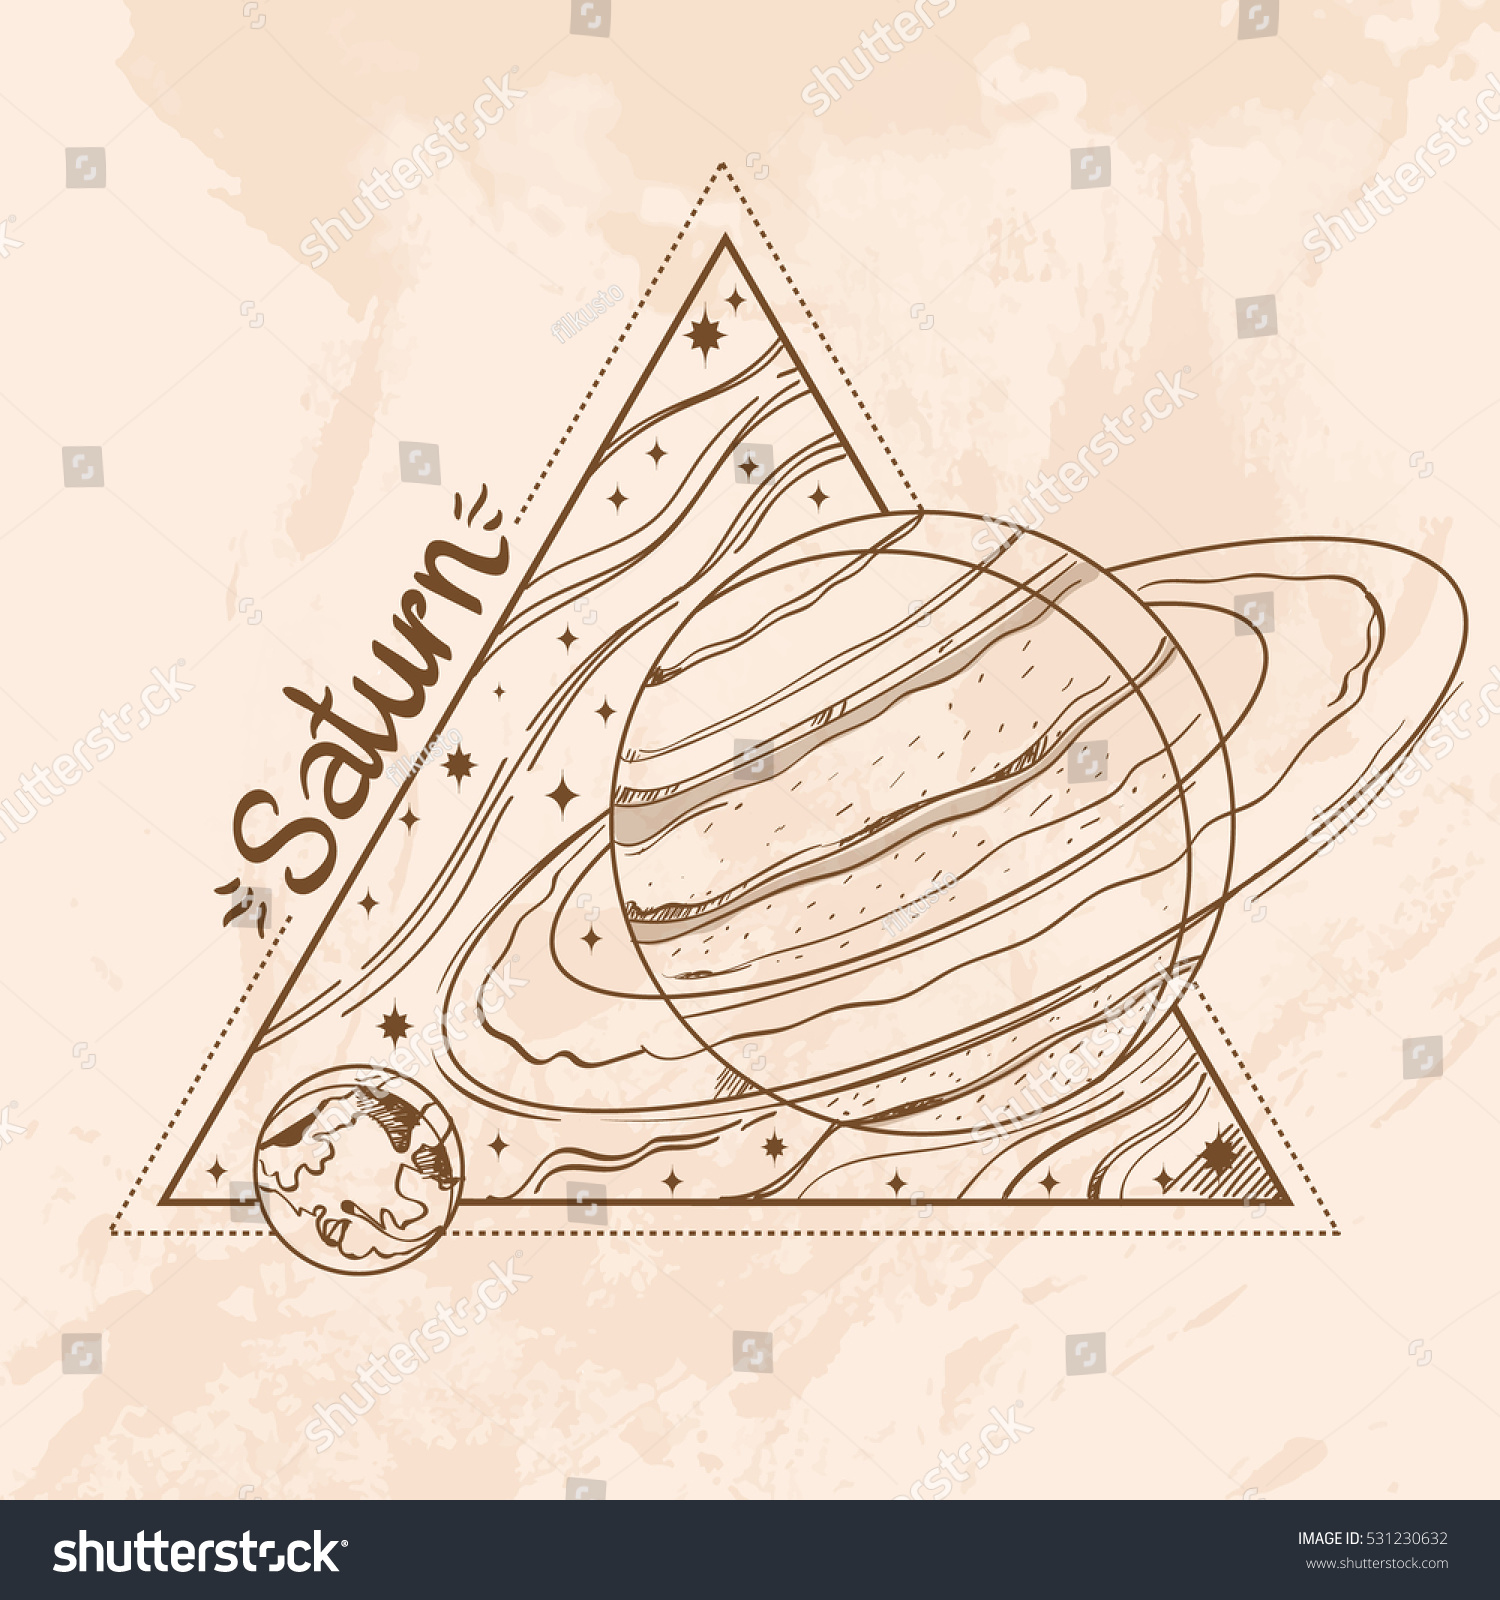 Saturn Planets Stars Solar System Symbols Stock Vector (Royalty Free ...